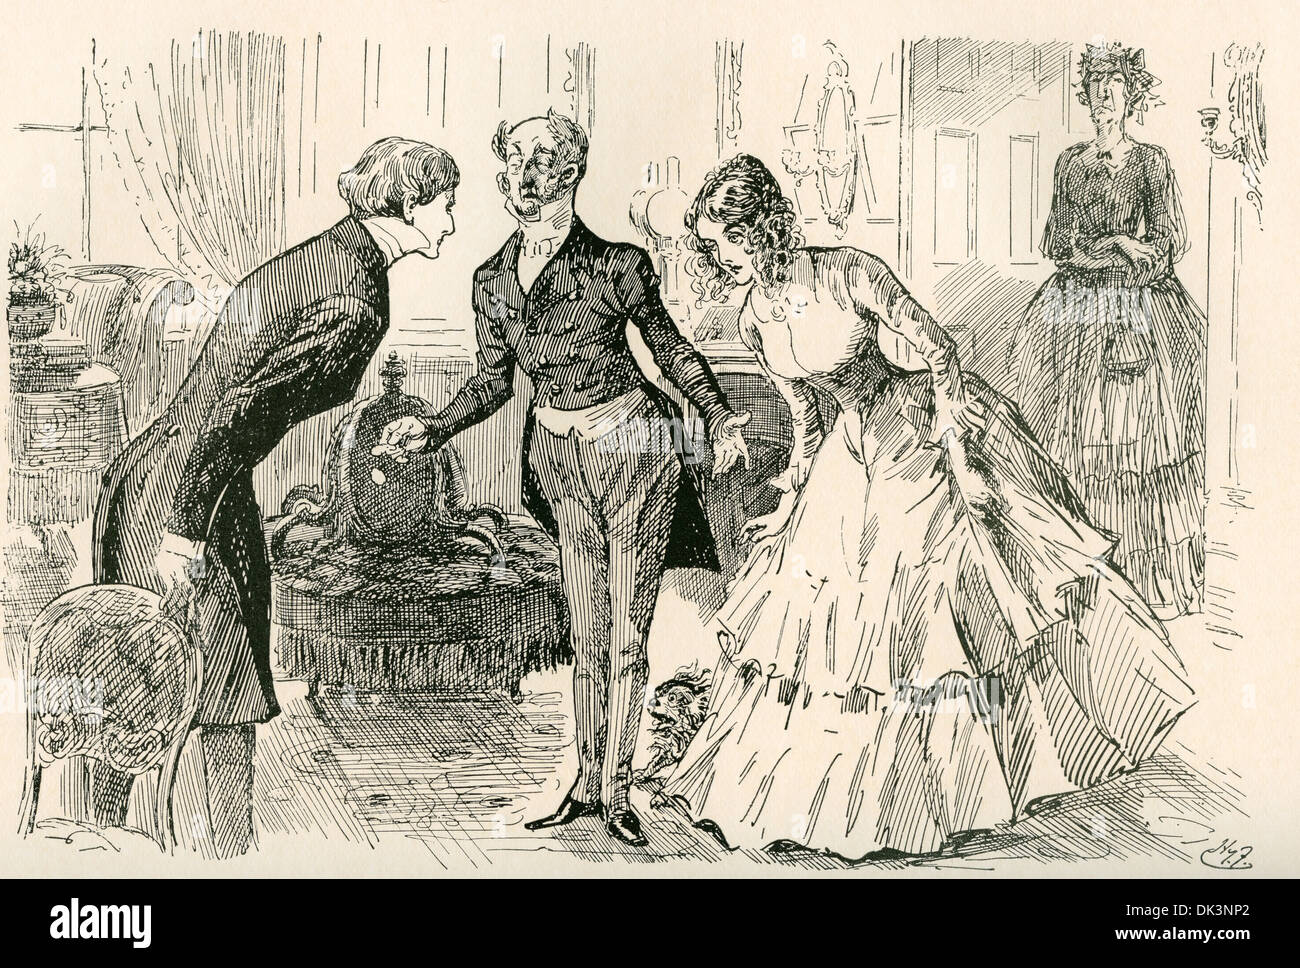 david meets dora and miss murdstone illustration by harry furniss  david meets dora and miss murdstone illustration by harry furniss for the charles dickens novel david copperfield